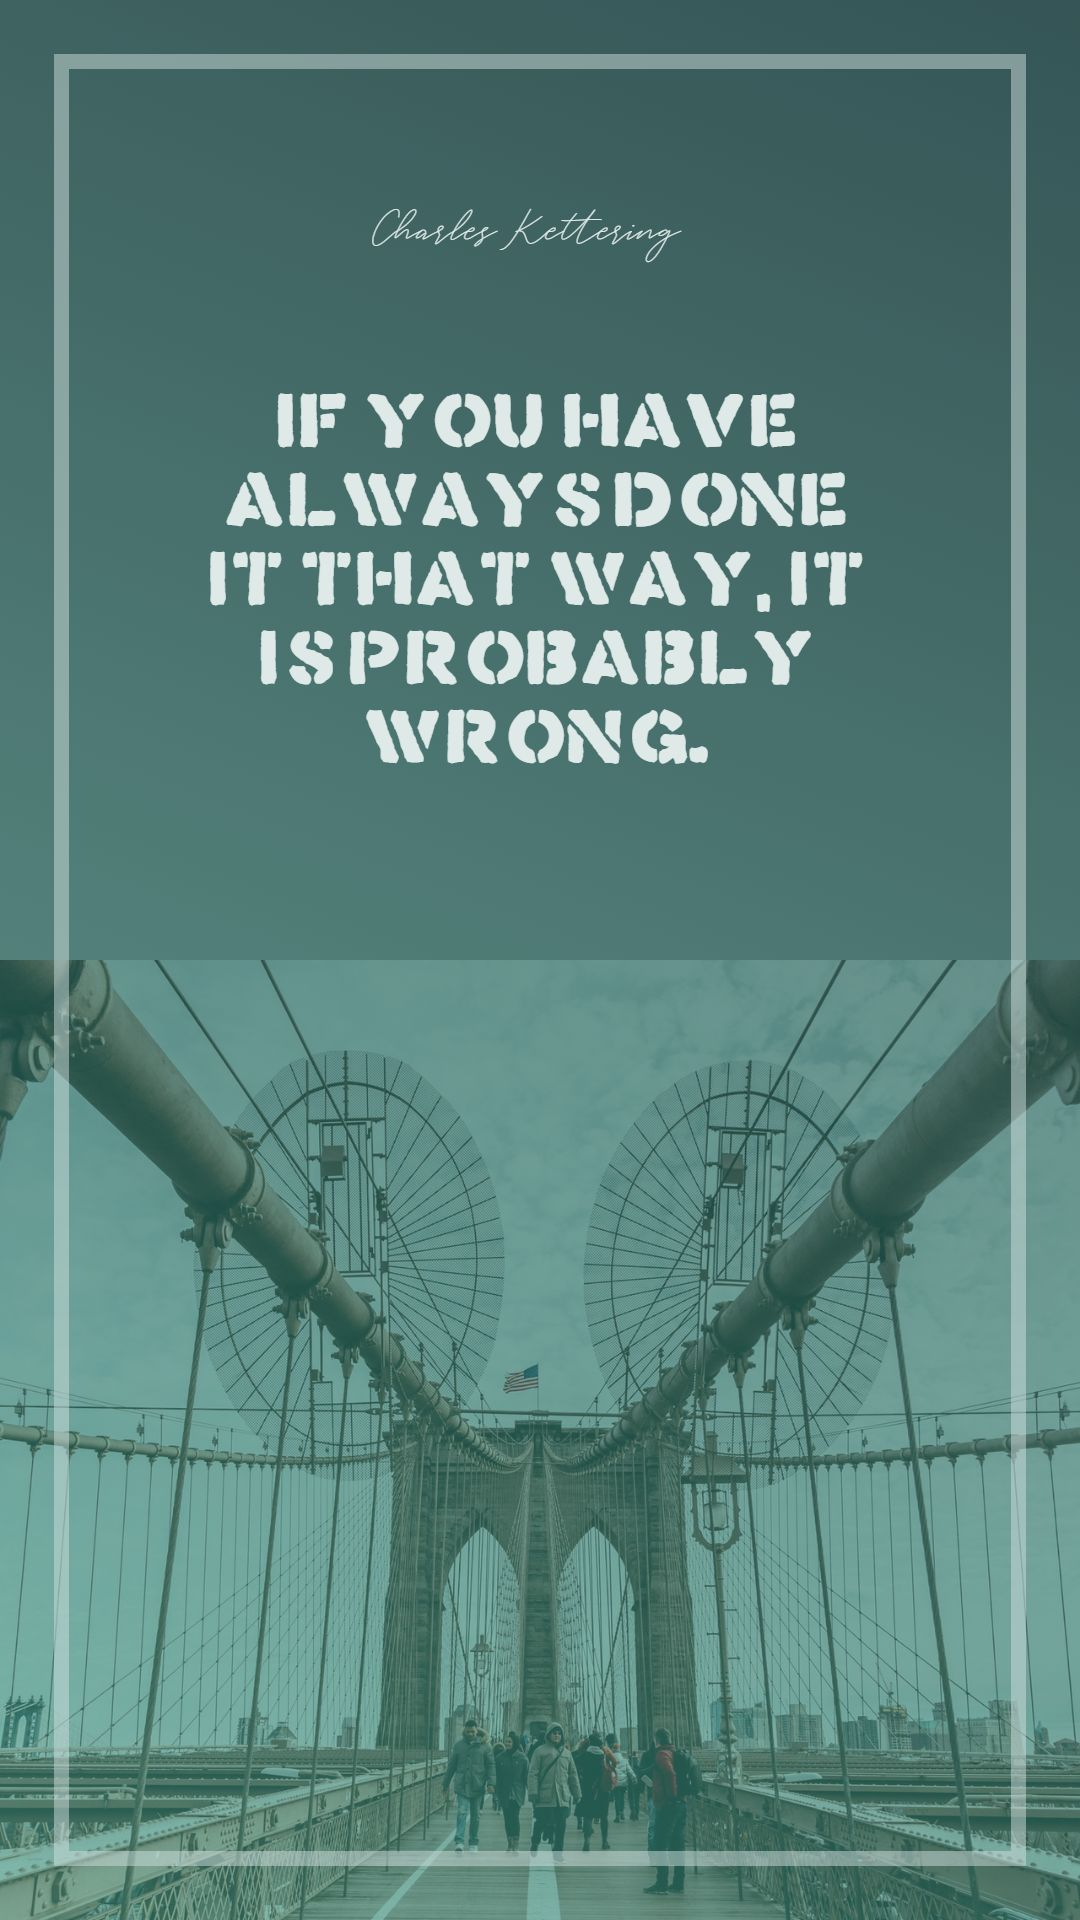 Quotes image of If you have always done it that way, it is probably wrong.